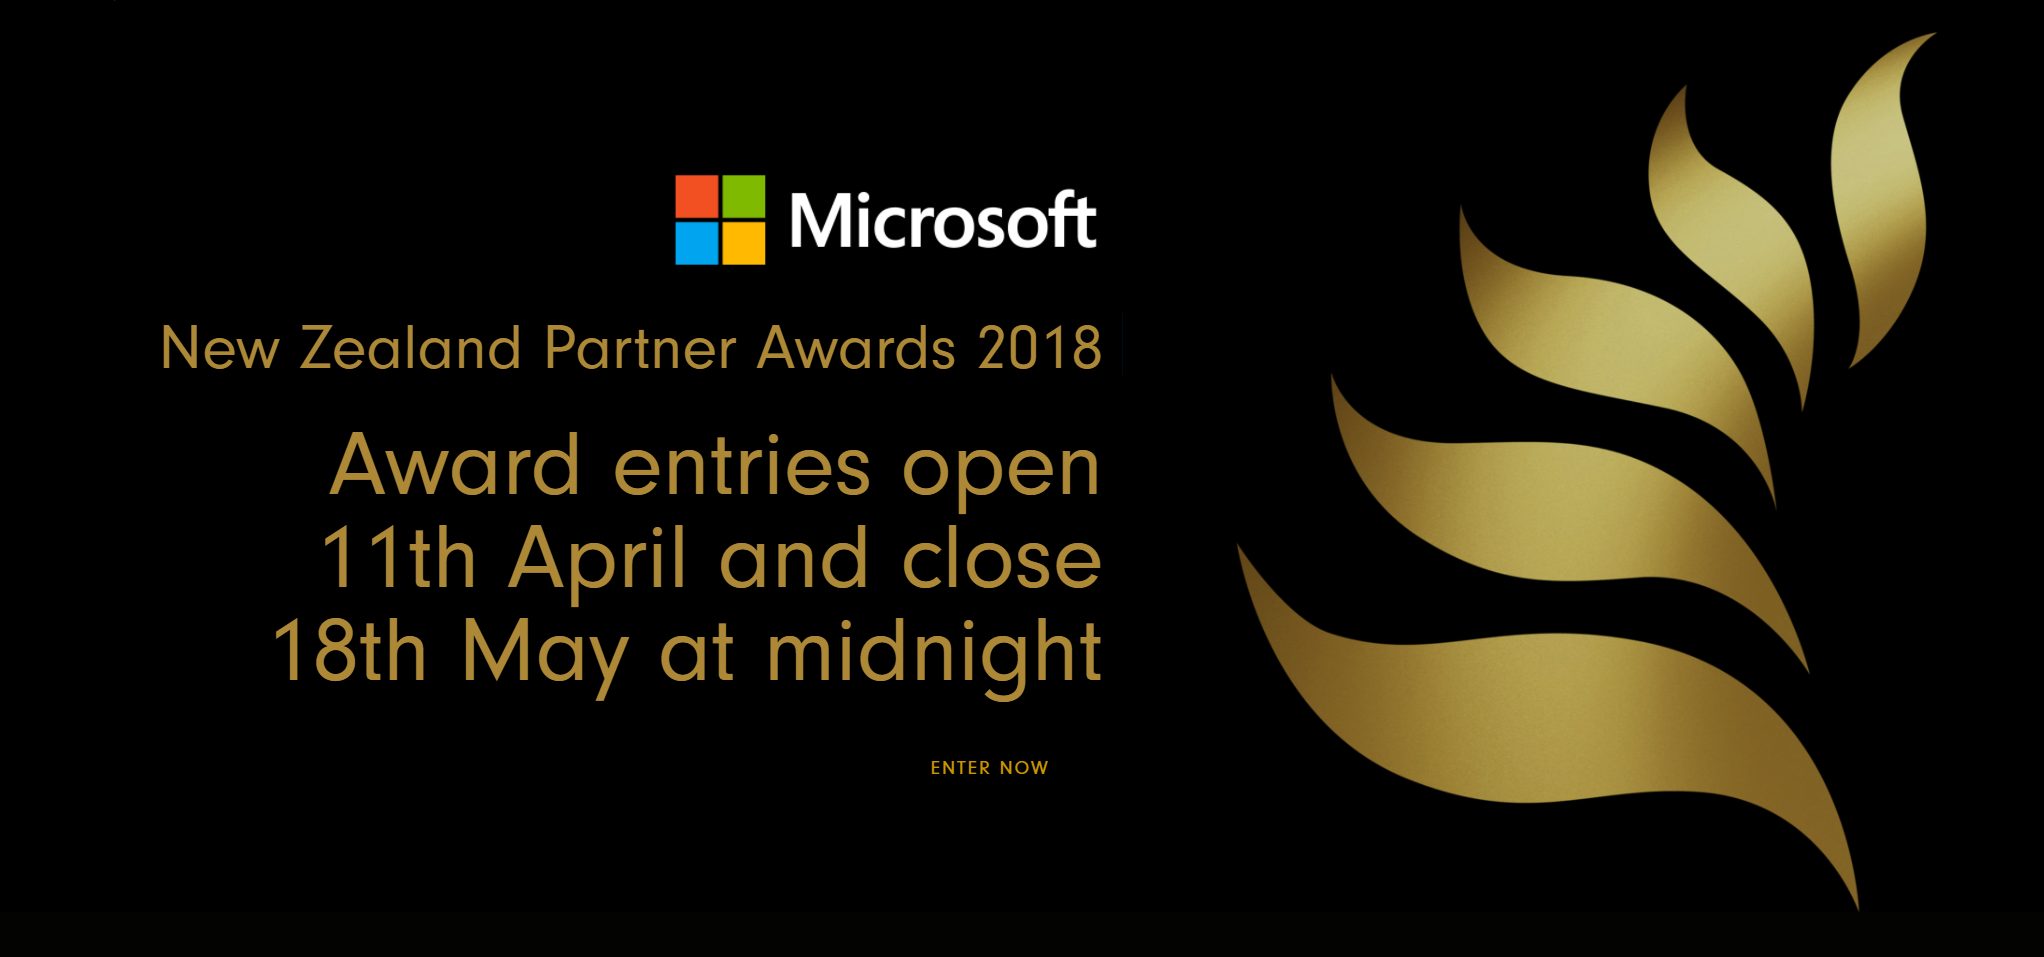 microsoft nz partner awards now open for entries microsoft nz